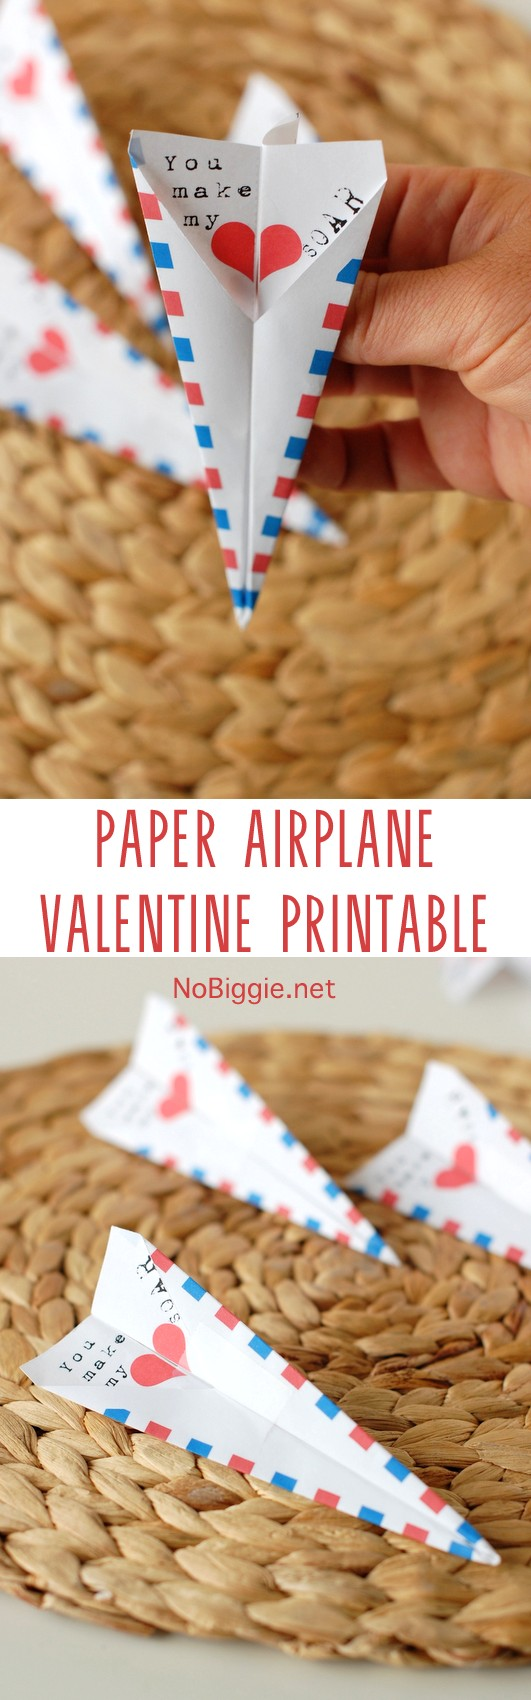 Paper airplane Valentine Printable is a cute way to send that special someone a Valentine. #papercrafts #paperairplanes #valentinesday #printable #freeprintable